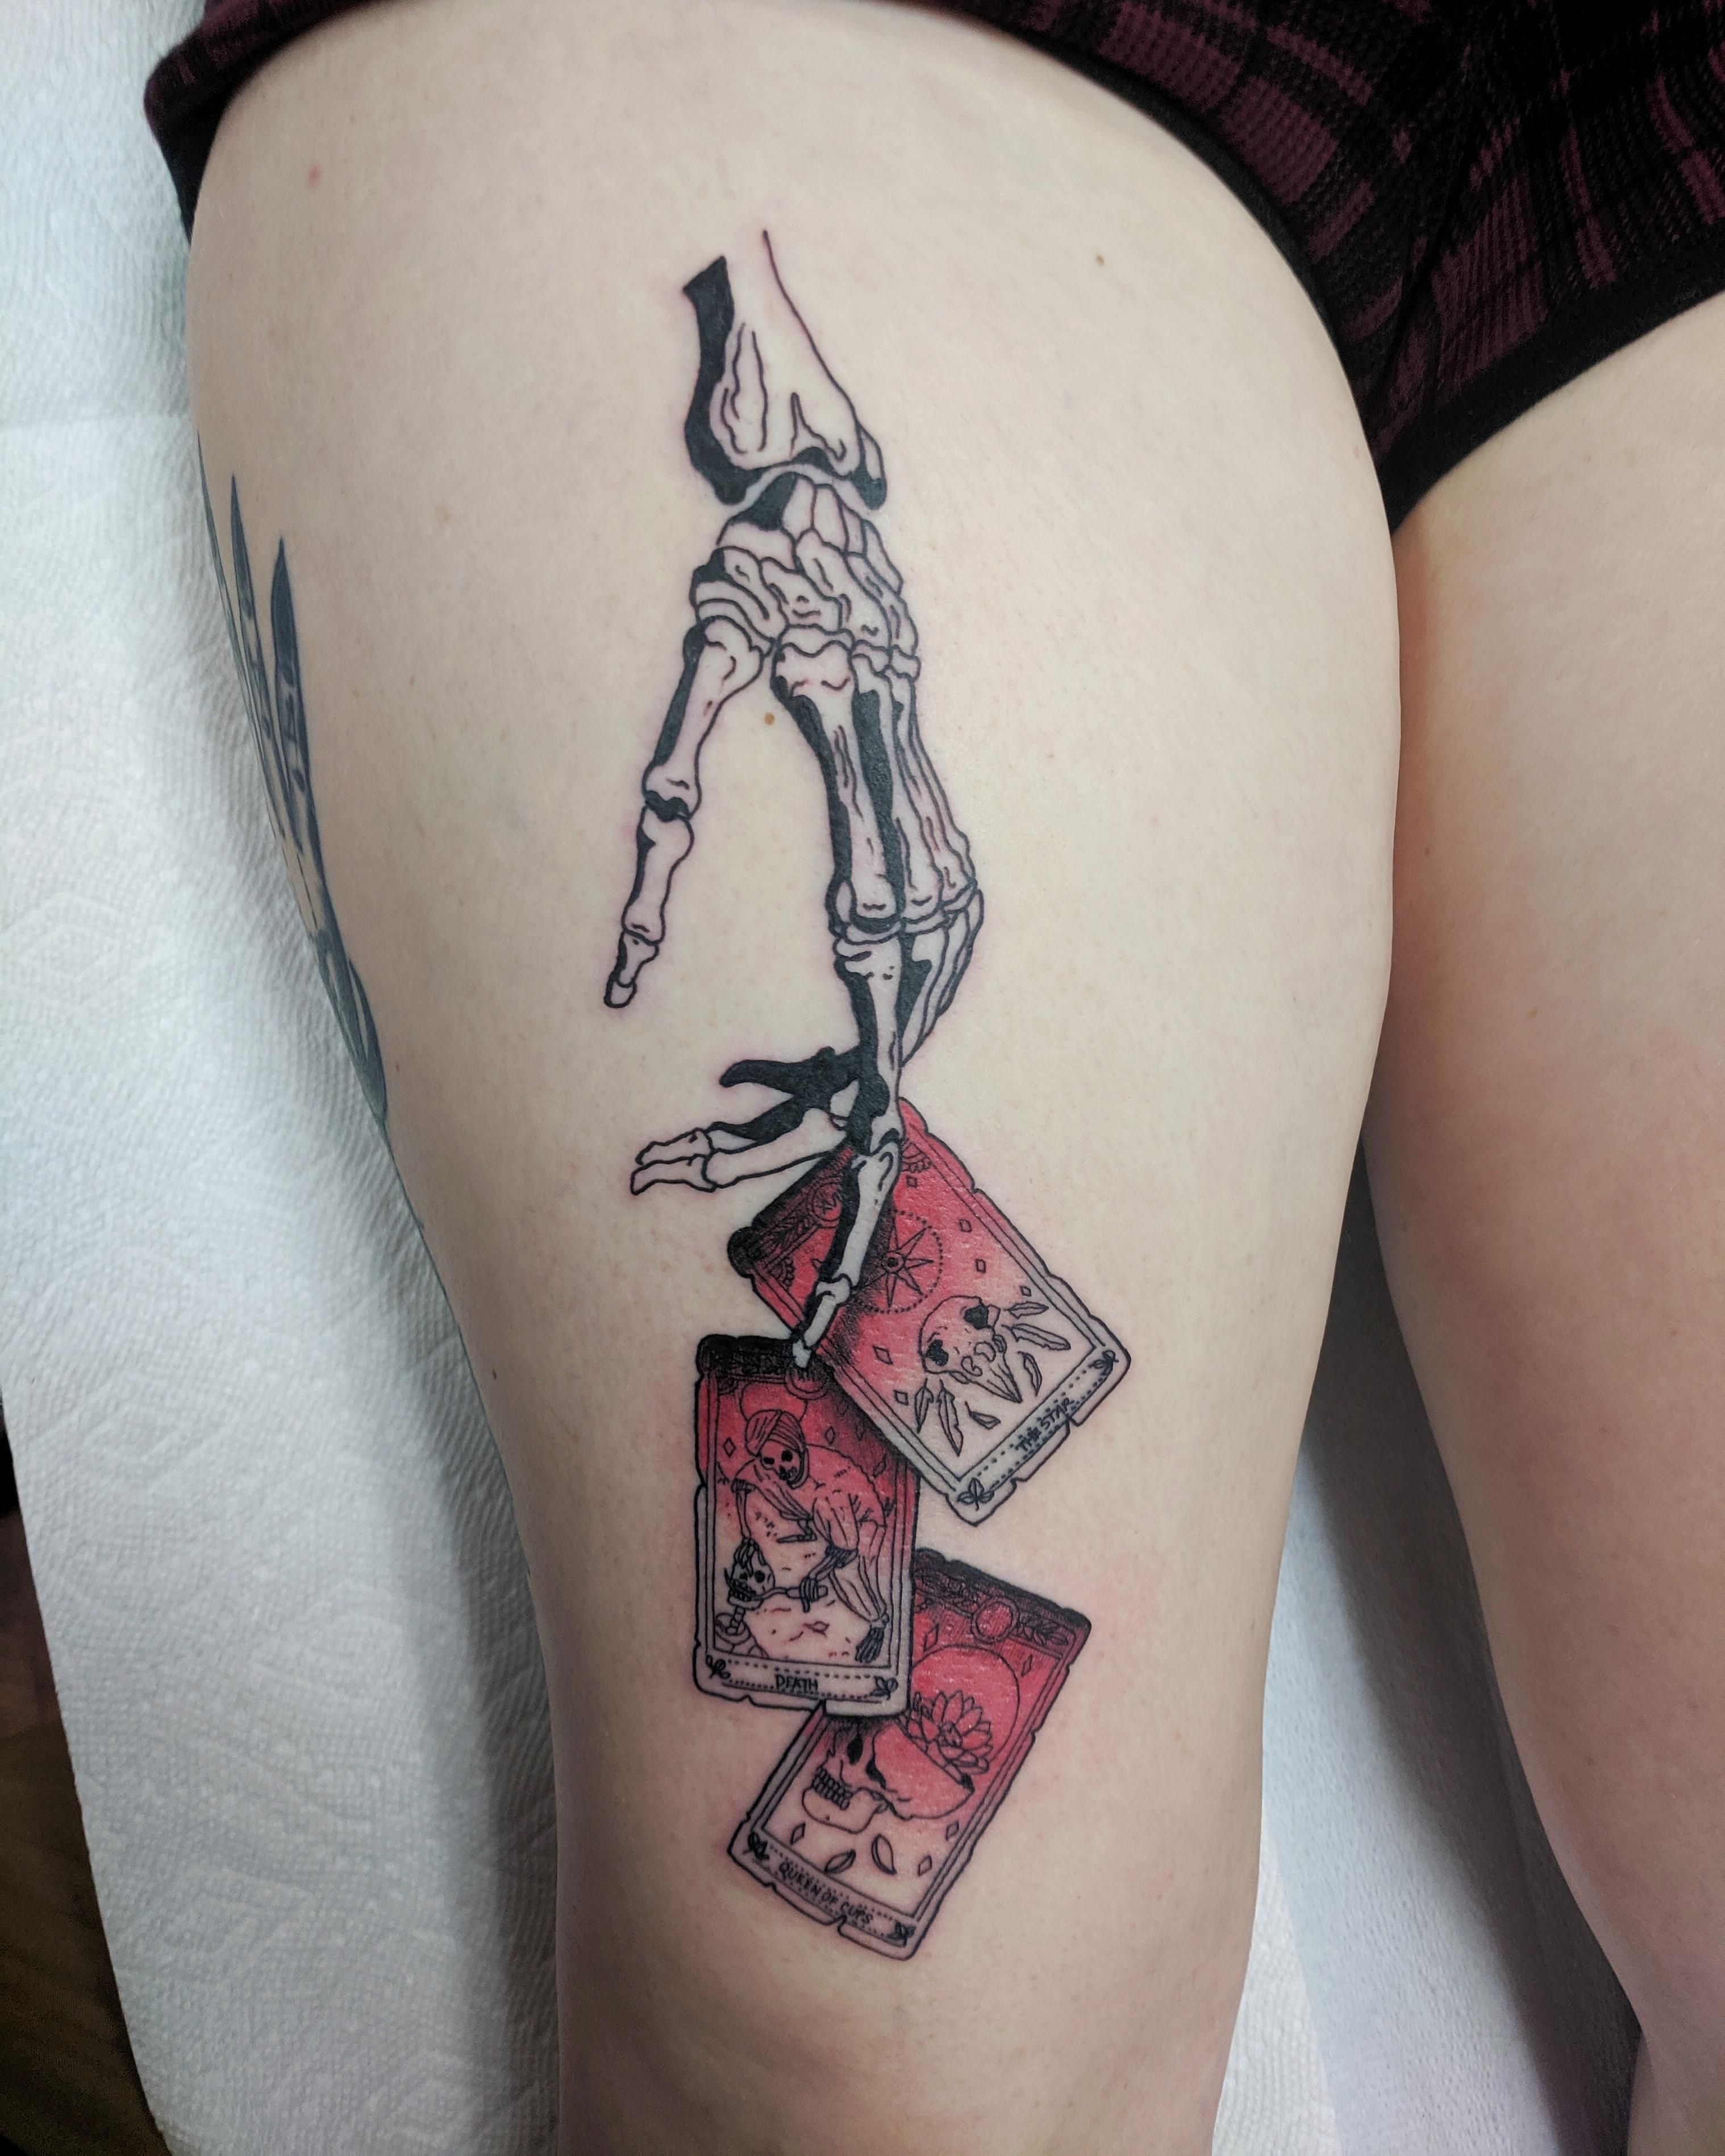 Skeletal hand dropping Star, Death and Queen of Cups tarot cards by Andrew Wilson, Main Street Tattoo, Newmarket, ON.